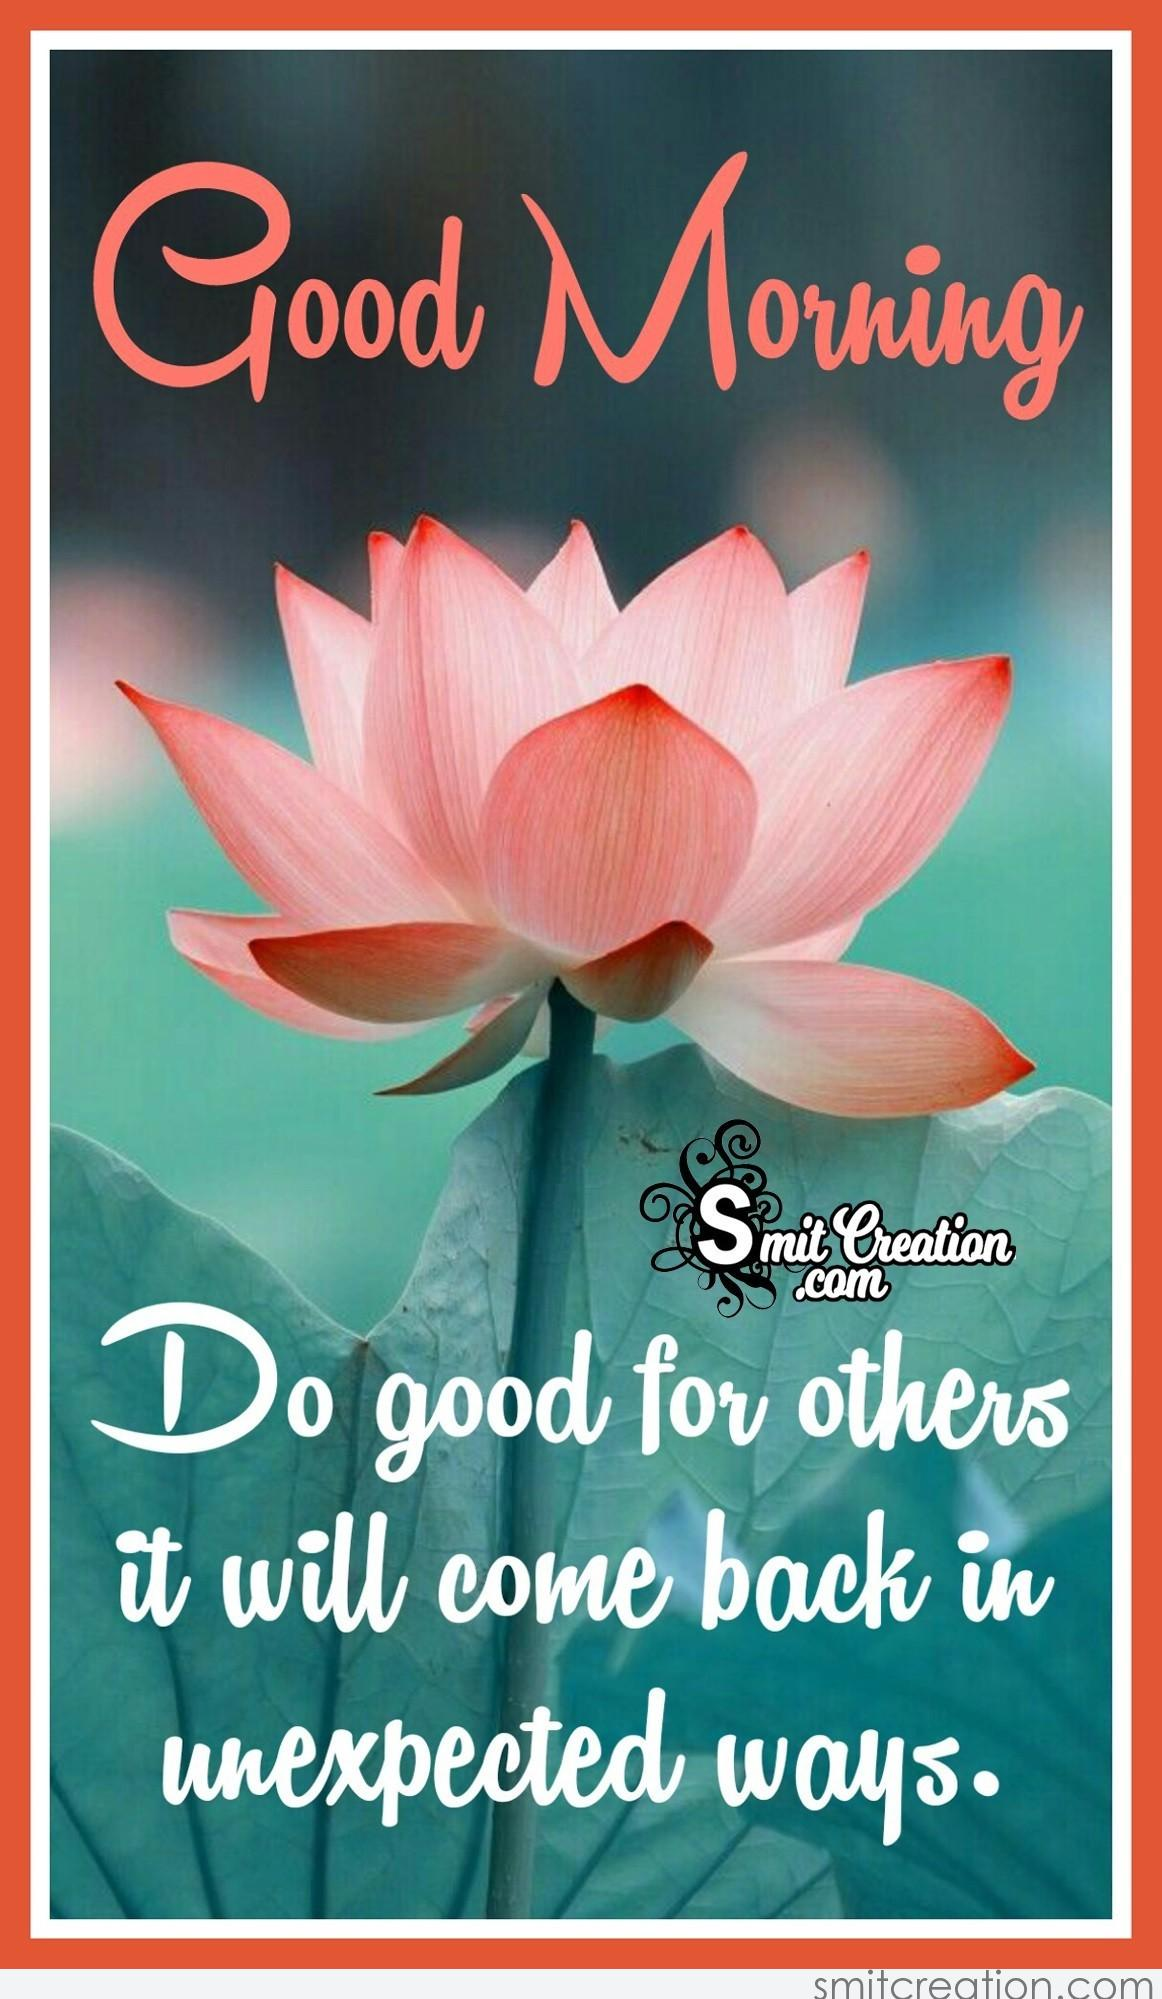 Good Morning 🙂 Do Good For Others, It Will Come Back In Unexpected Ways.